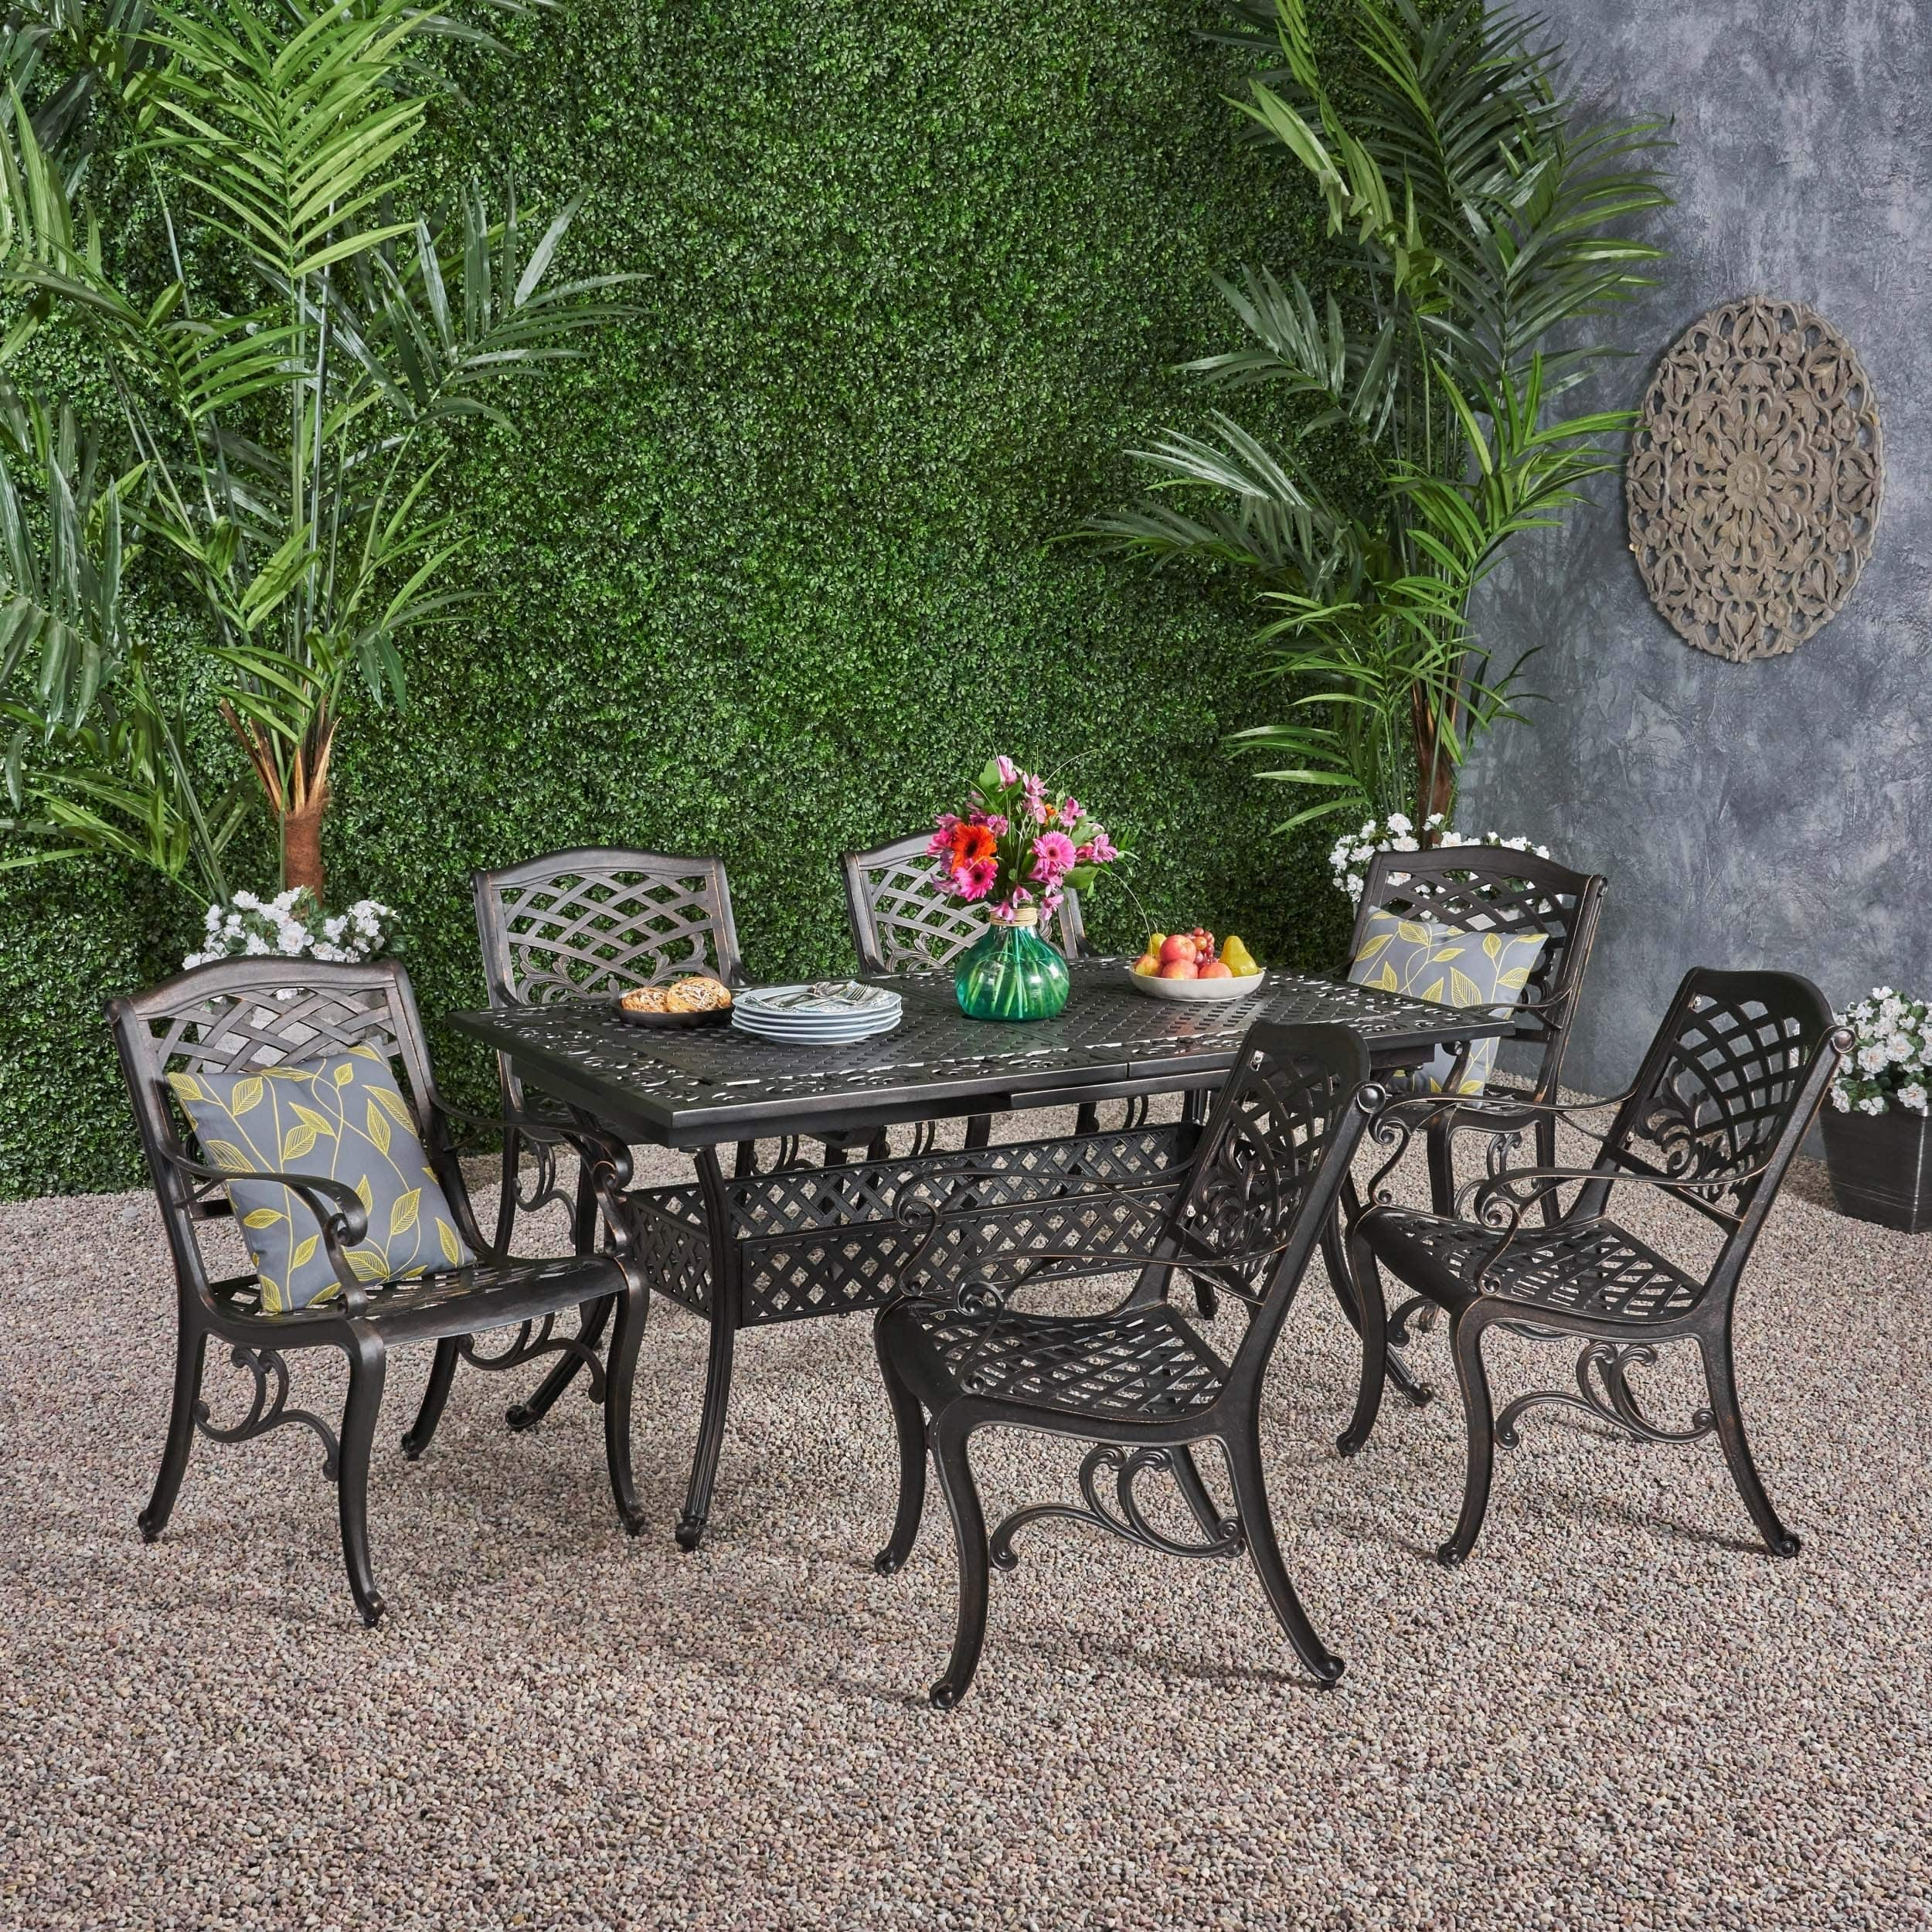 Christopher Knight Home Phoenix Outdoor 6-Seater Cast Aluminum Dining Set with Expandable Table by